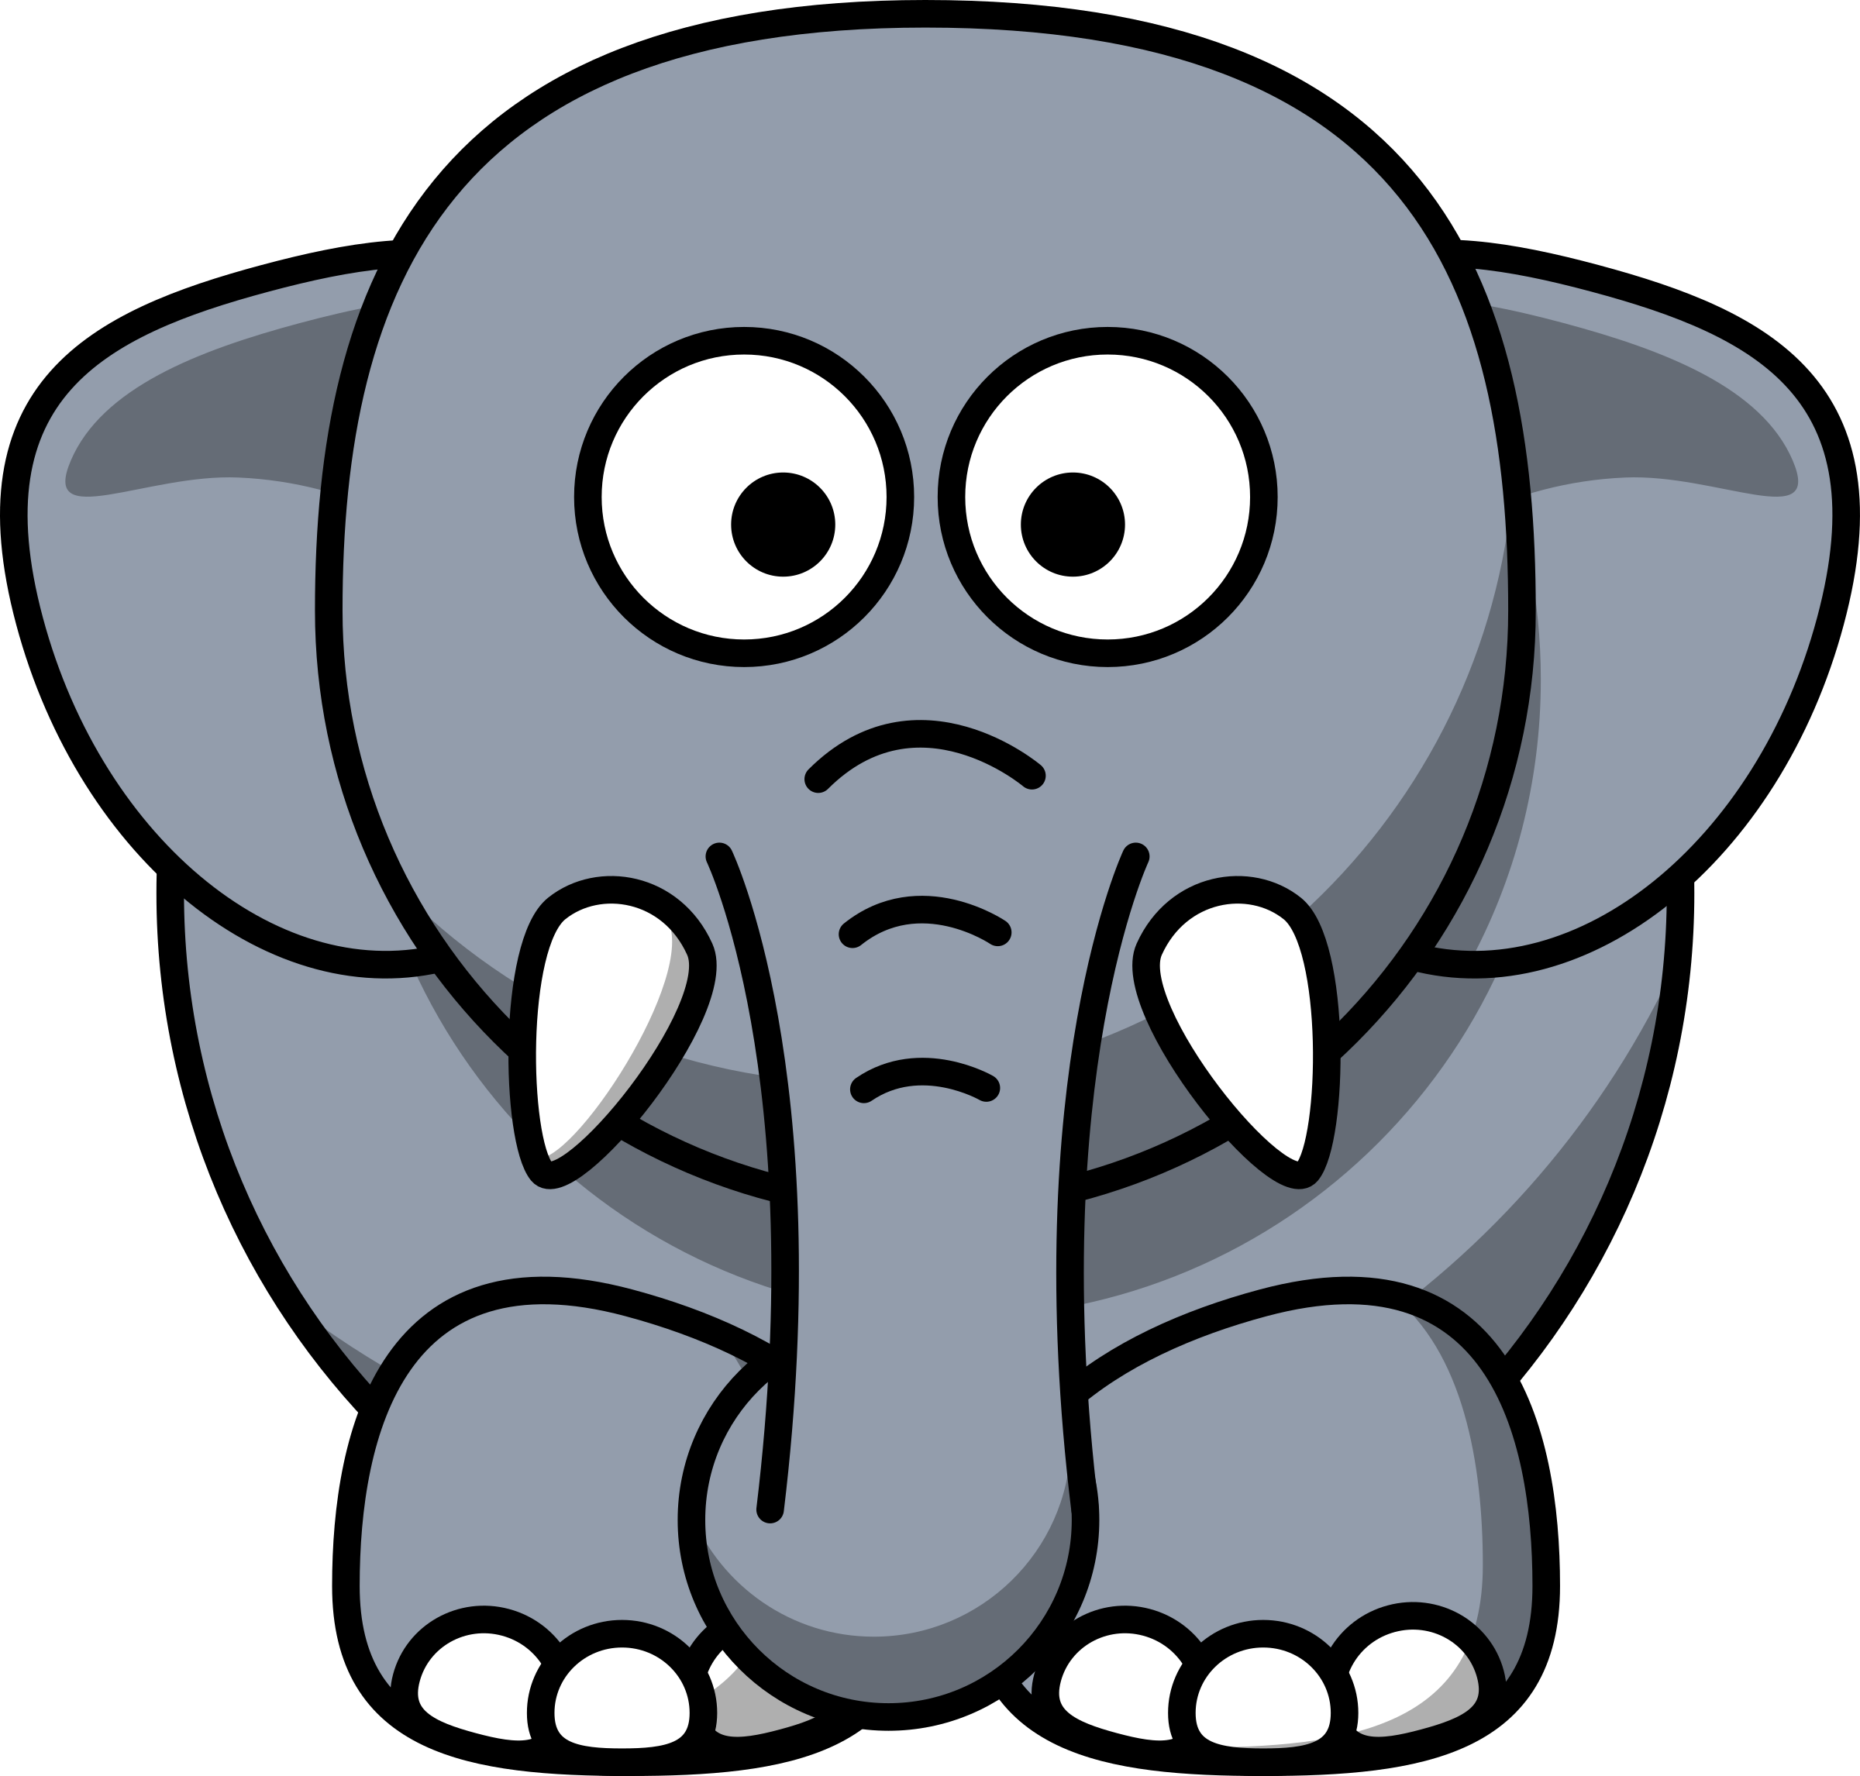 Elephant reading a book clipart image transparent All the Best Elephant Jokes In the World! - Stuporglue.org image transparent